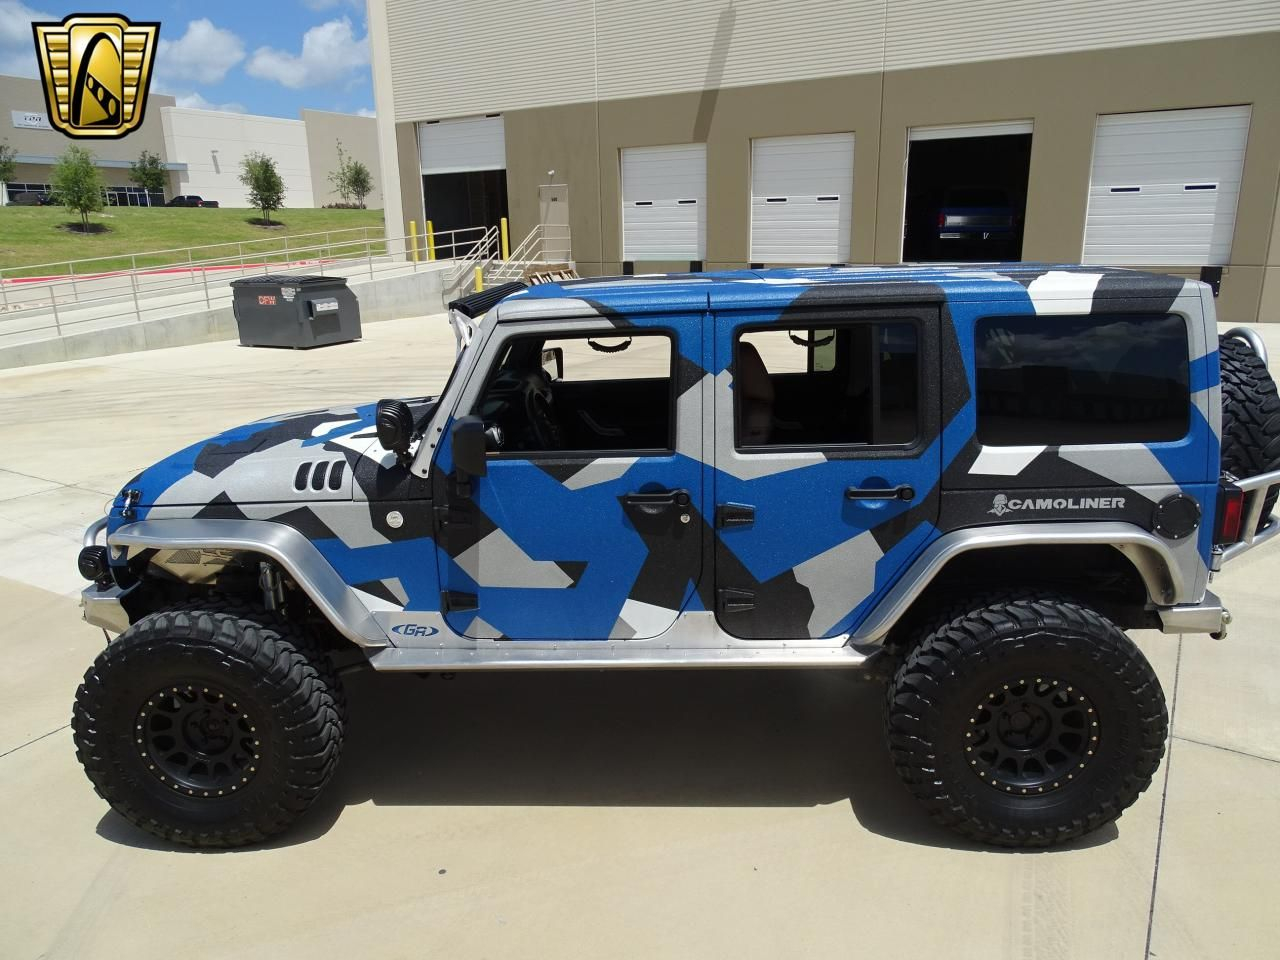 2013 jeep wrangler unlimited rubicon 3 6l v6 sfi dohc 24v 5 speed automatic for sale